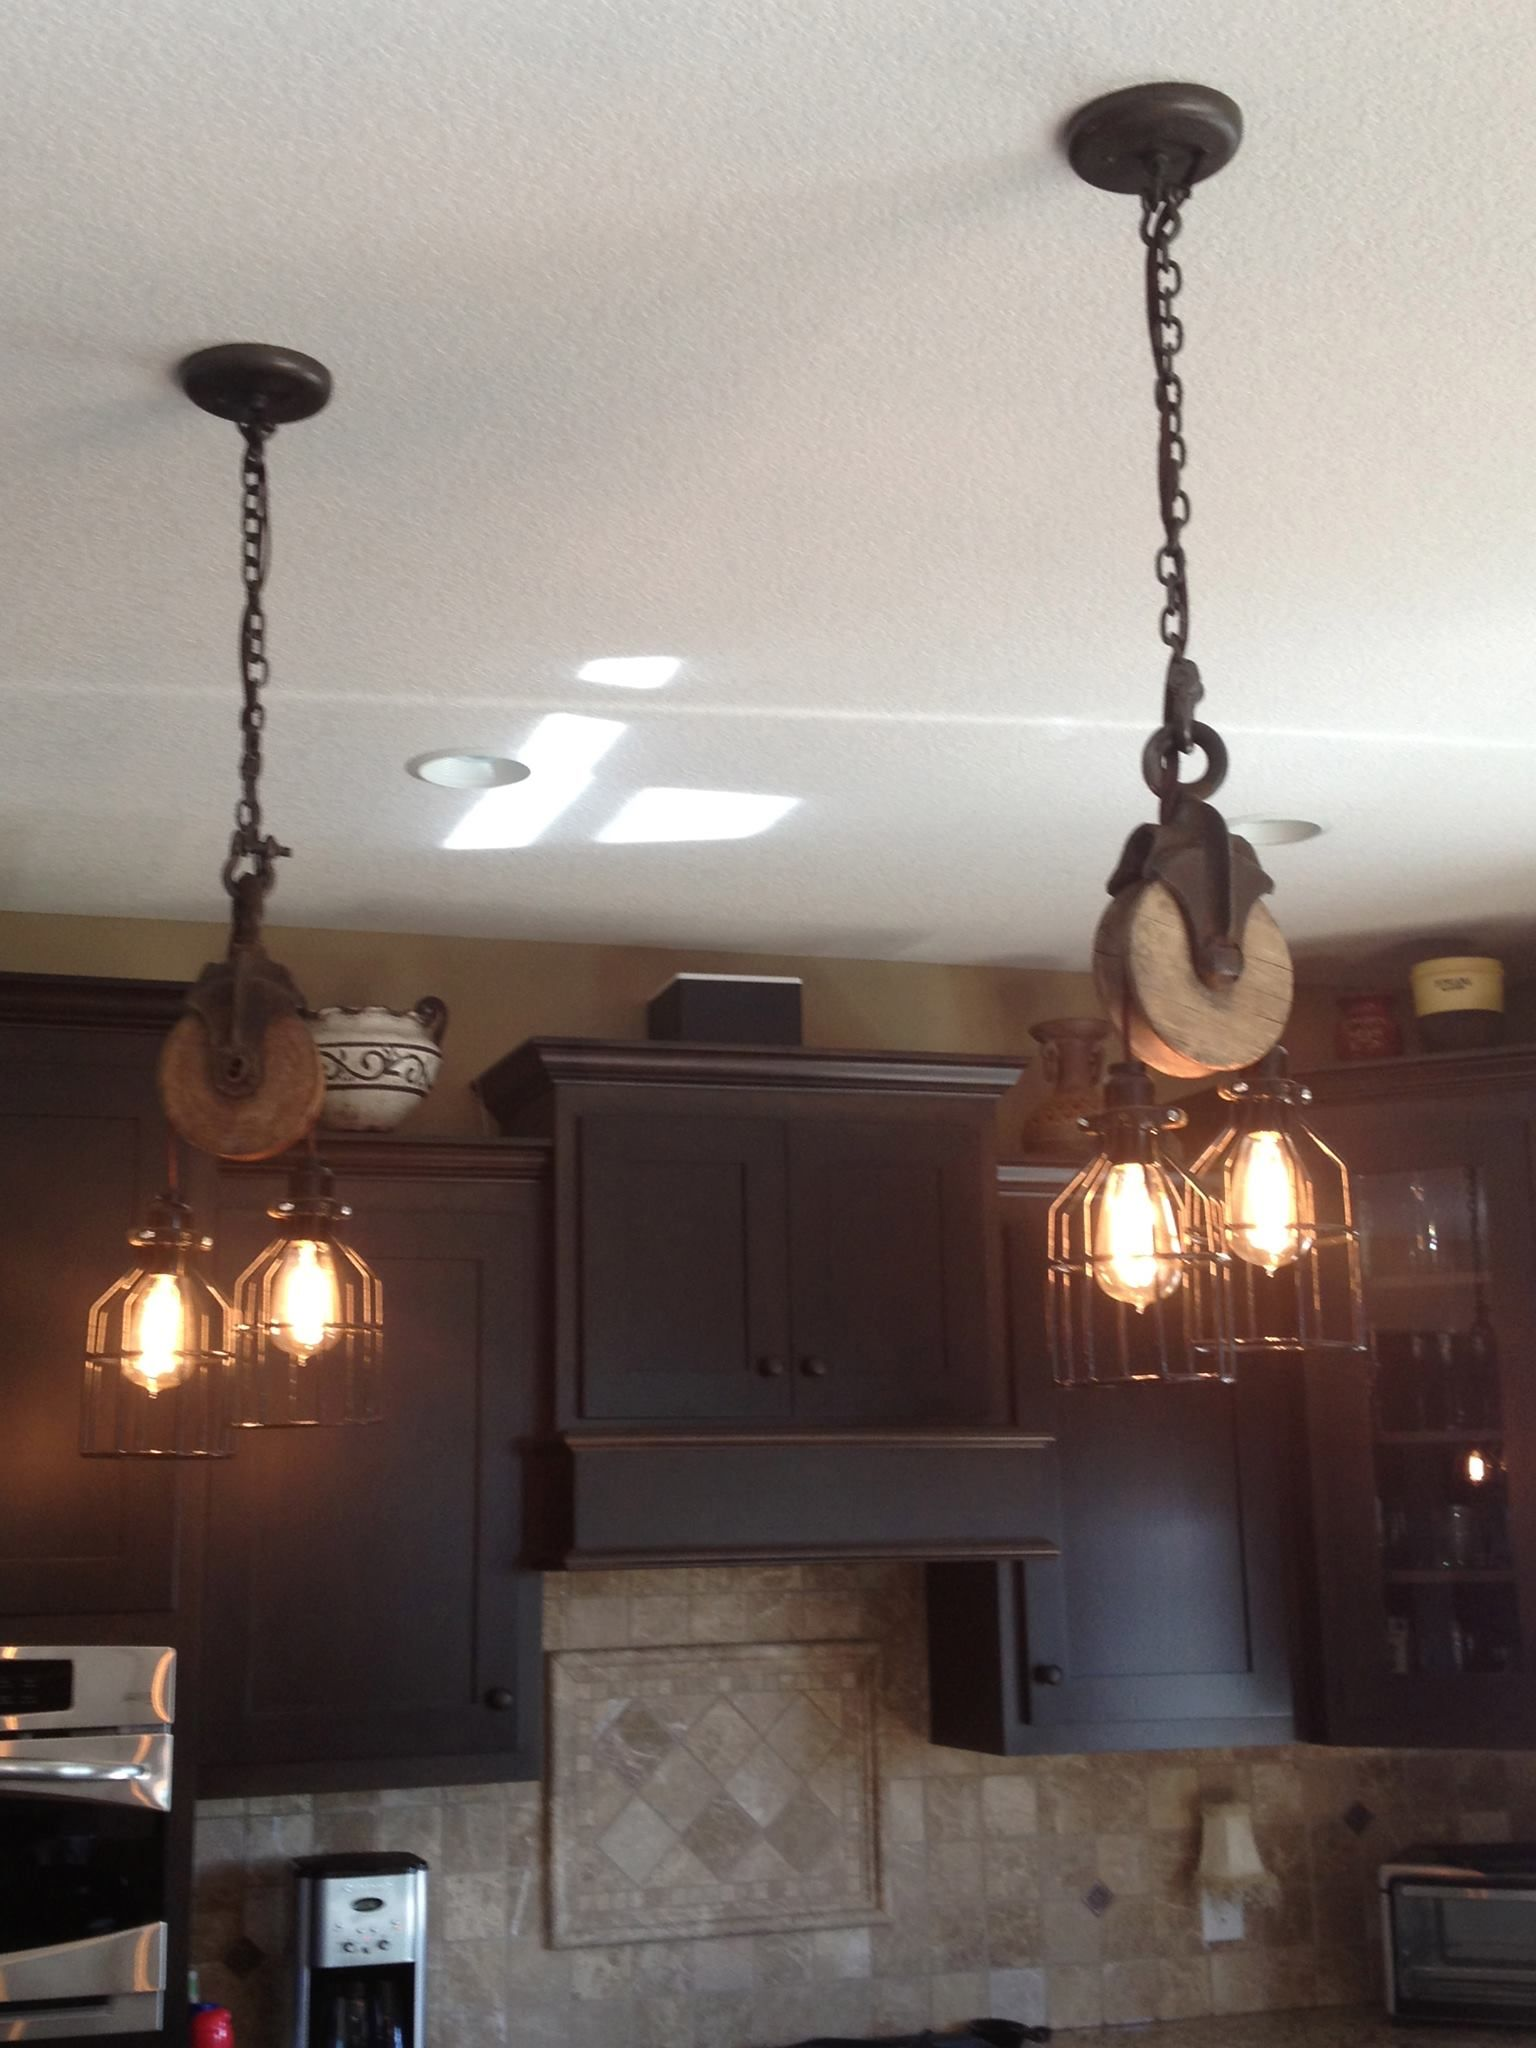 These west ninth vintage pulley lights complete this dark cabinet kitchen